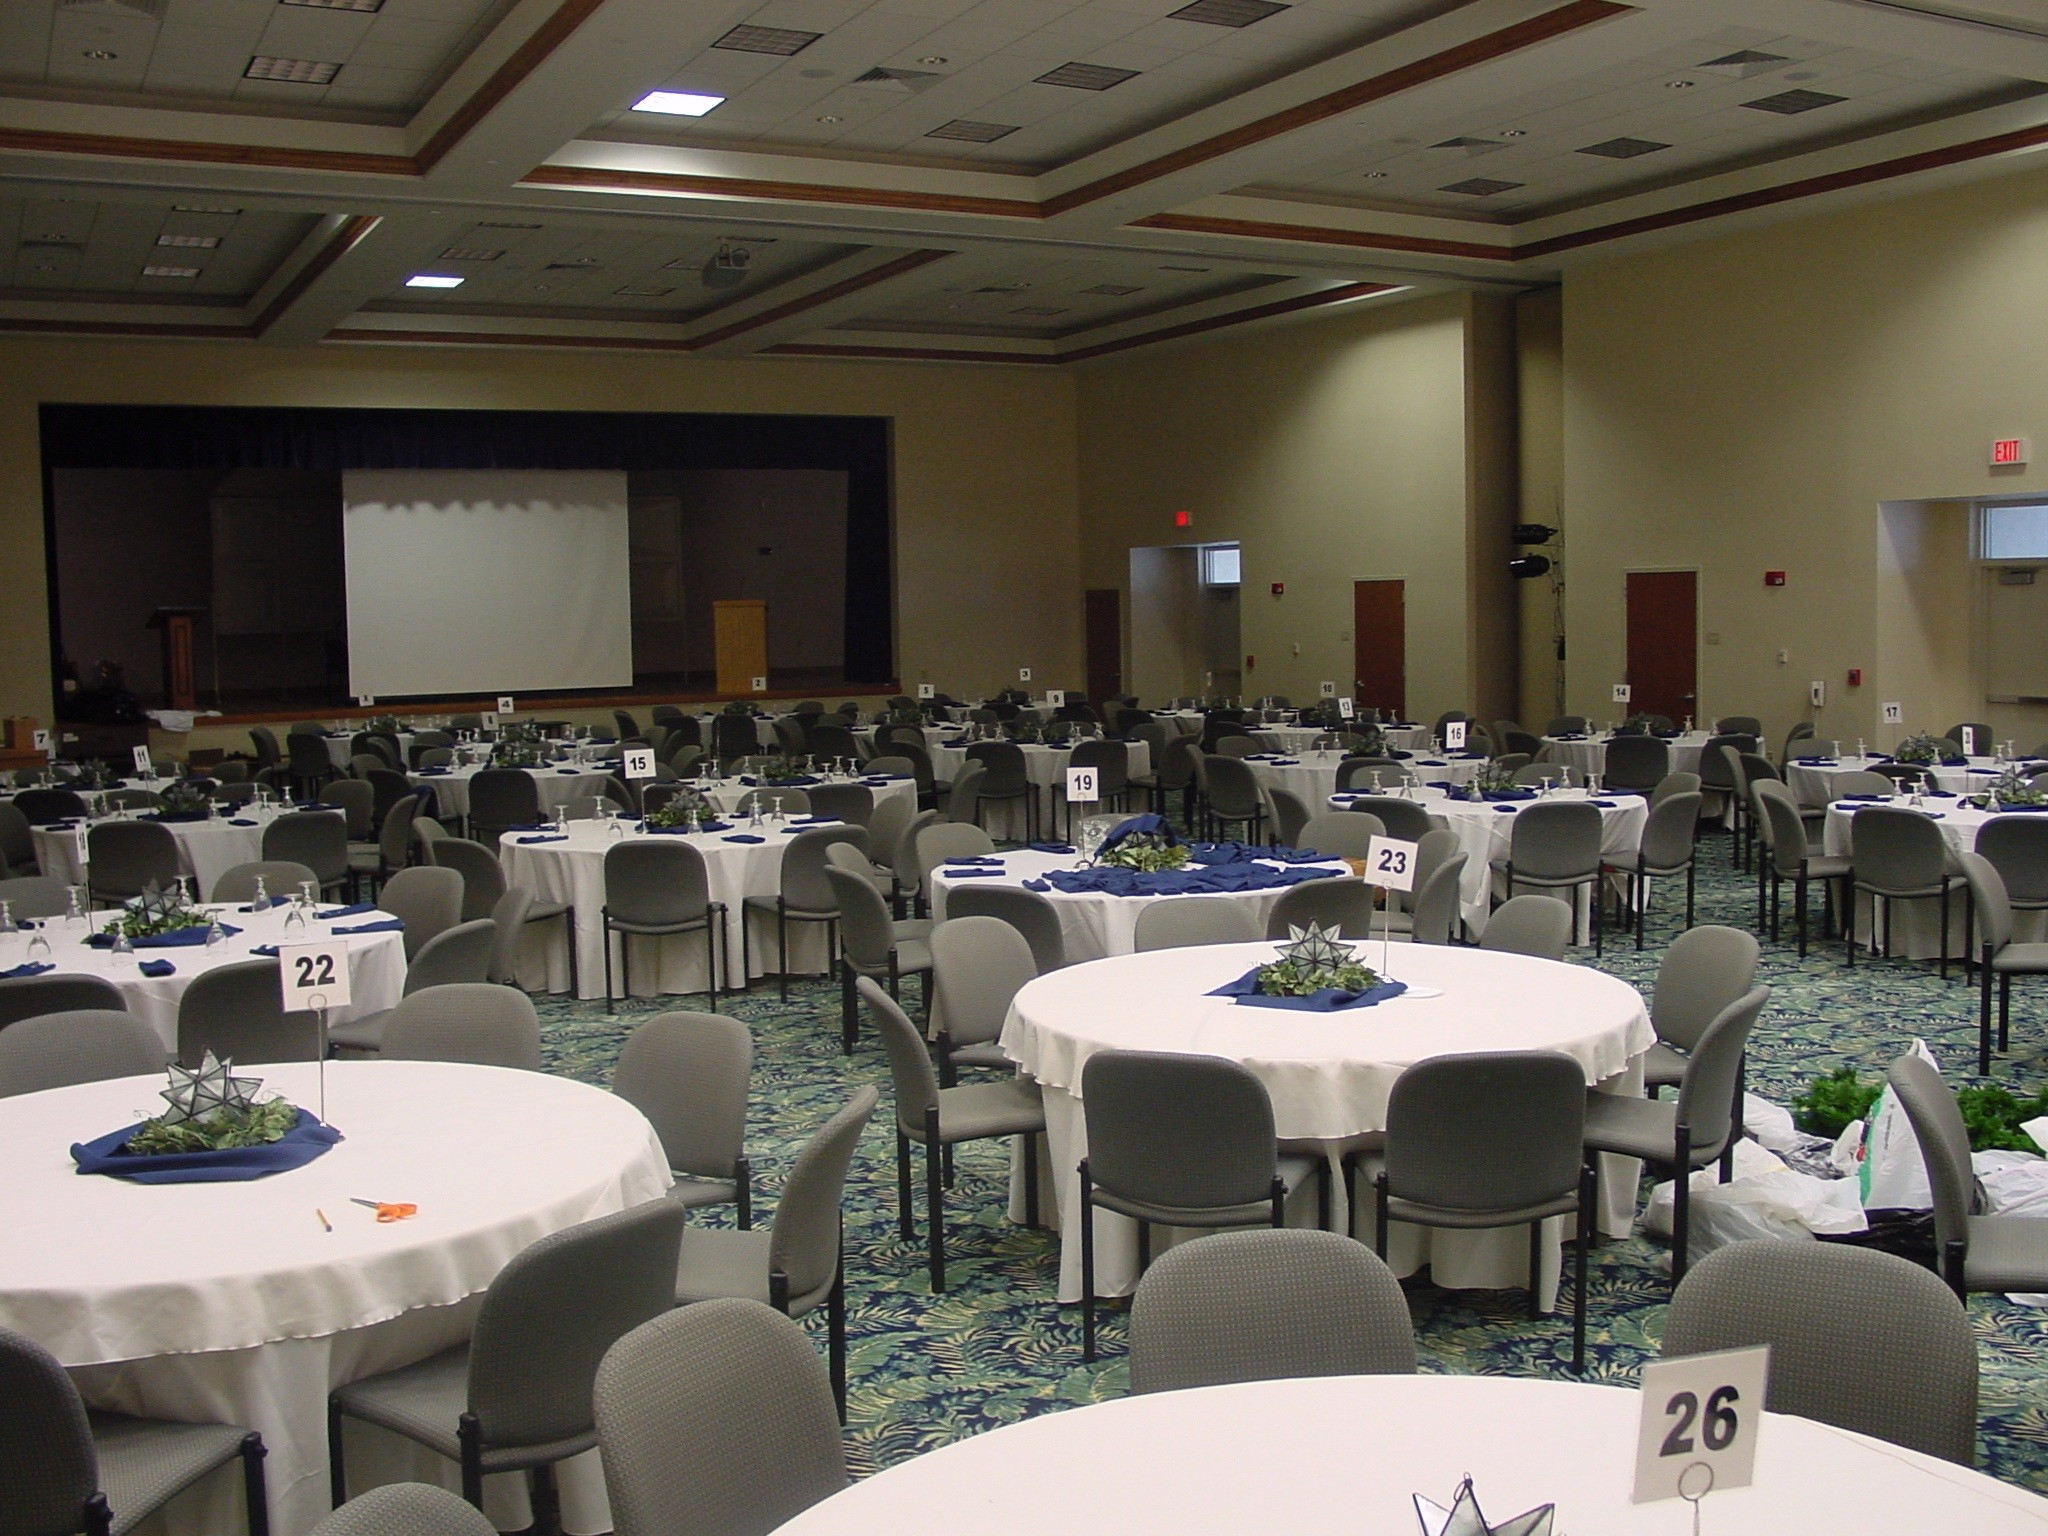 Community Center Auditorium Banquet